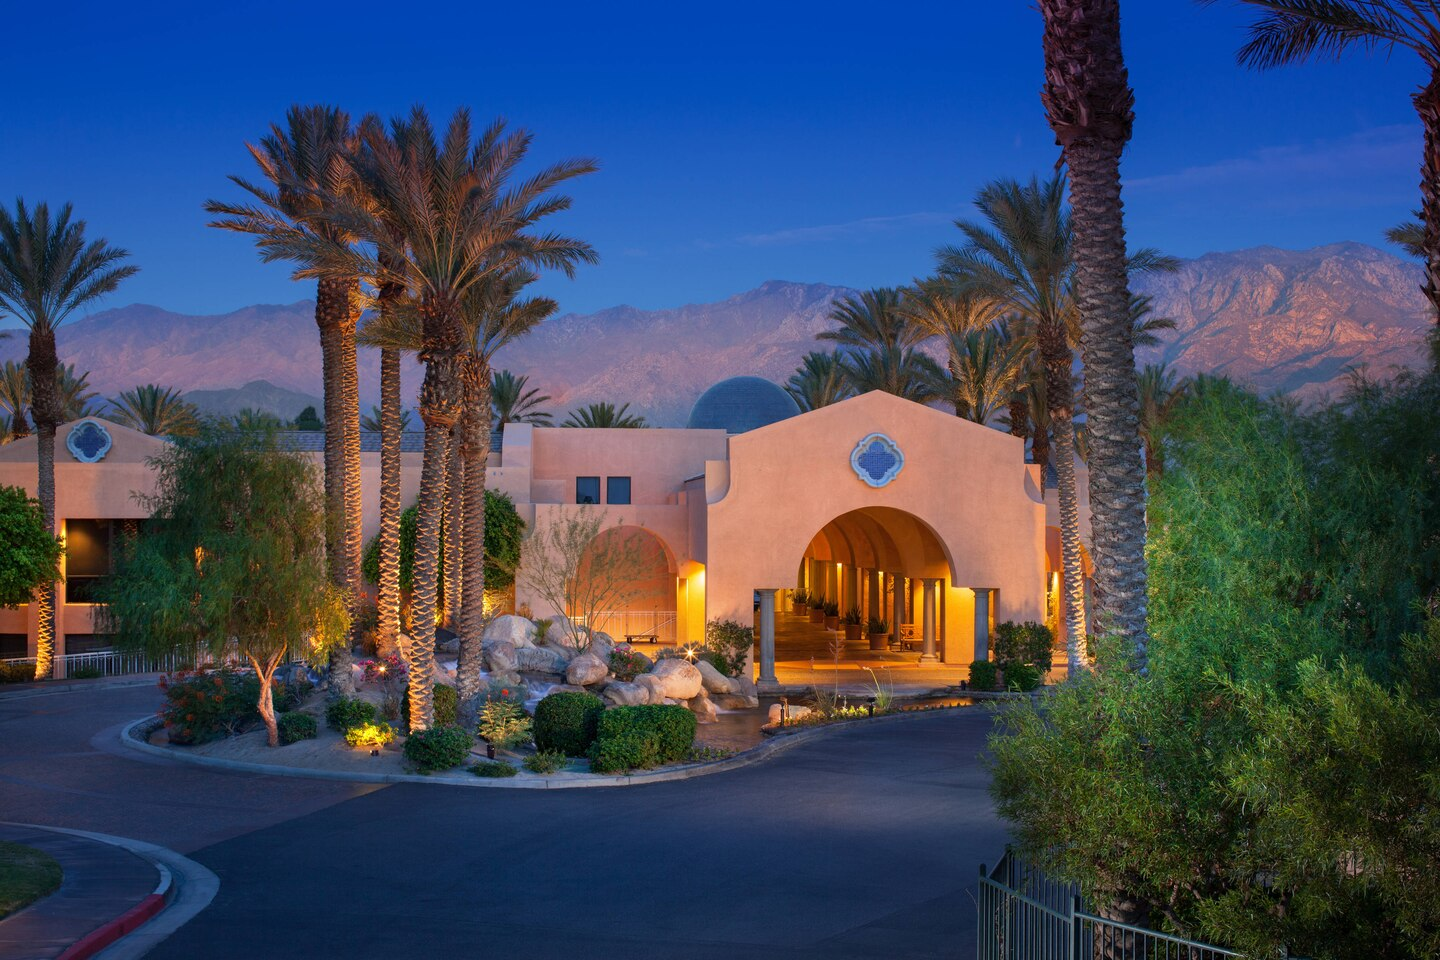 psppw-the-westin-mission-hills-resort-villas-palm-springs-exterior